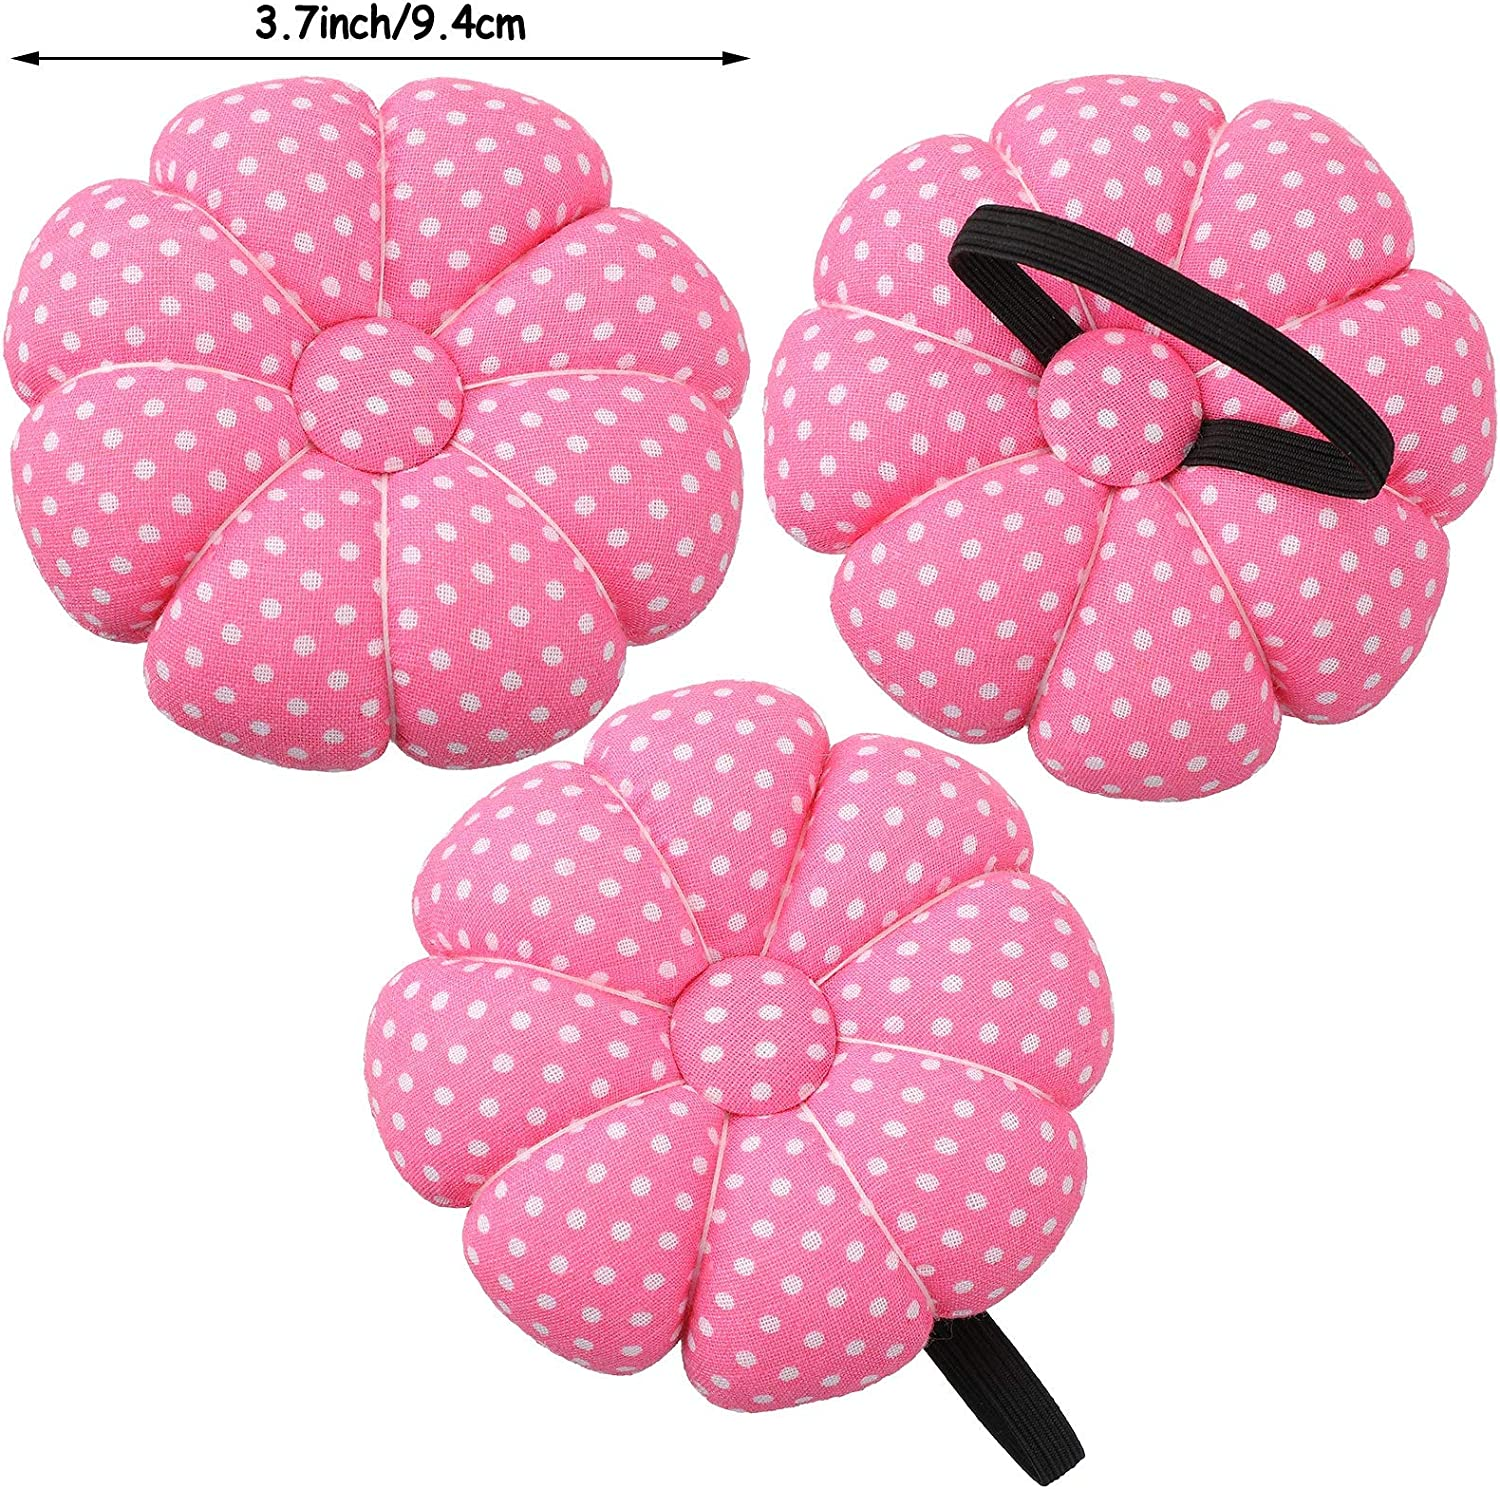 Cushion Wristband Holder Magnetic Pin Holder Jexine Magnetic Wrist Sewing Pincushion and Cotton Wrist Pin Cushions with 100 Pieces Sewing Pins 1.5 Inch Ball Head Straight Pins for Hand Sewing Craft